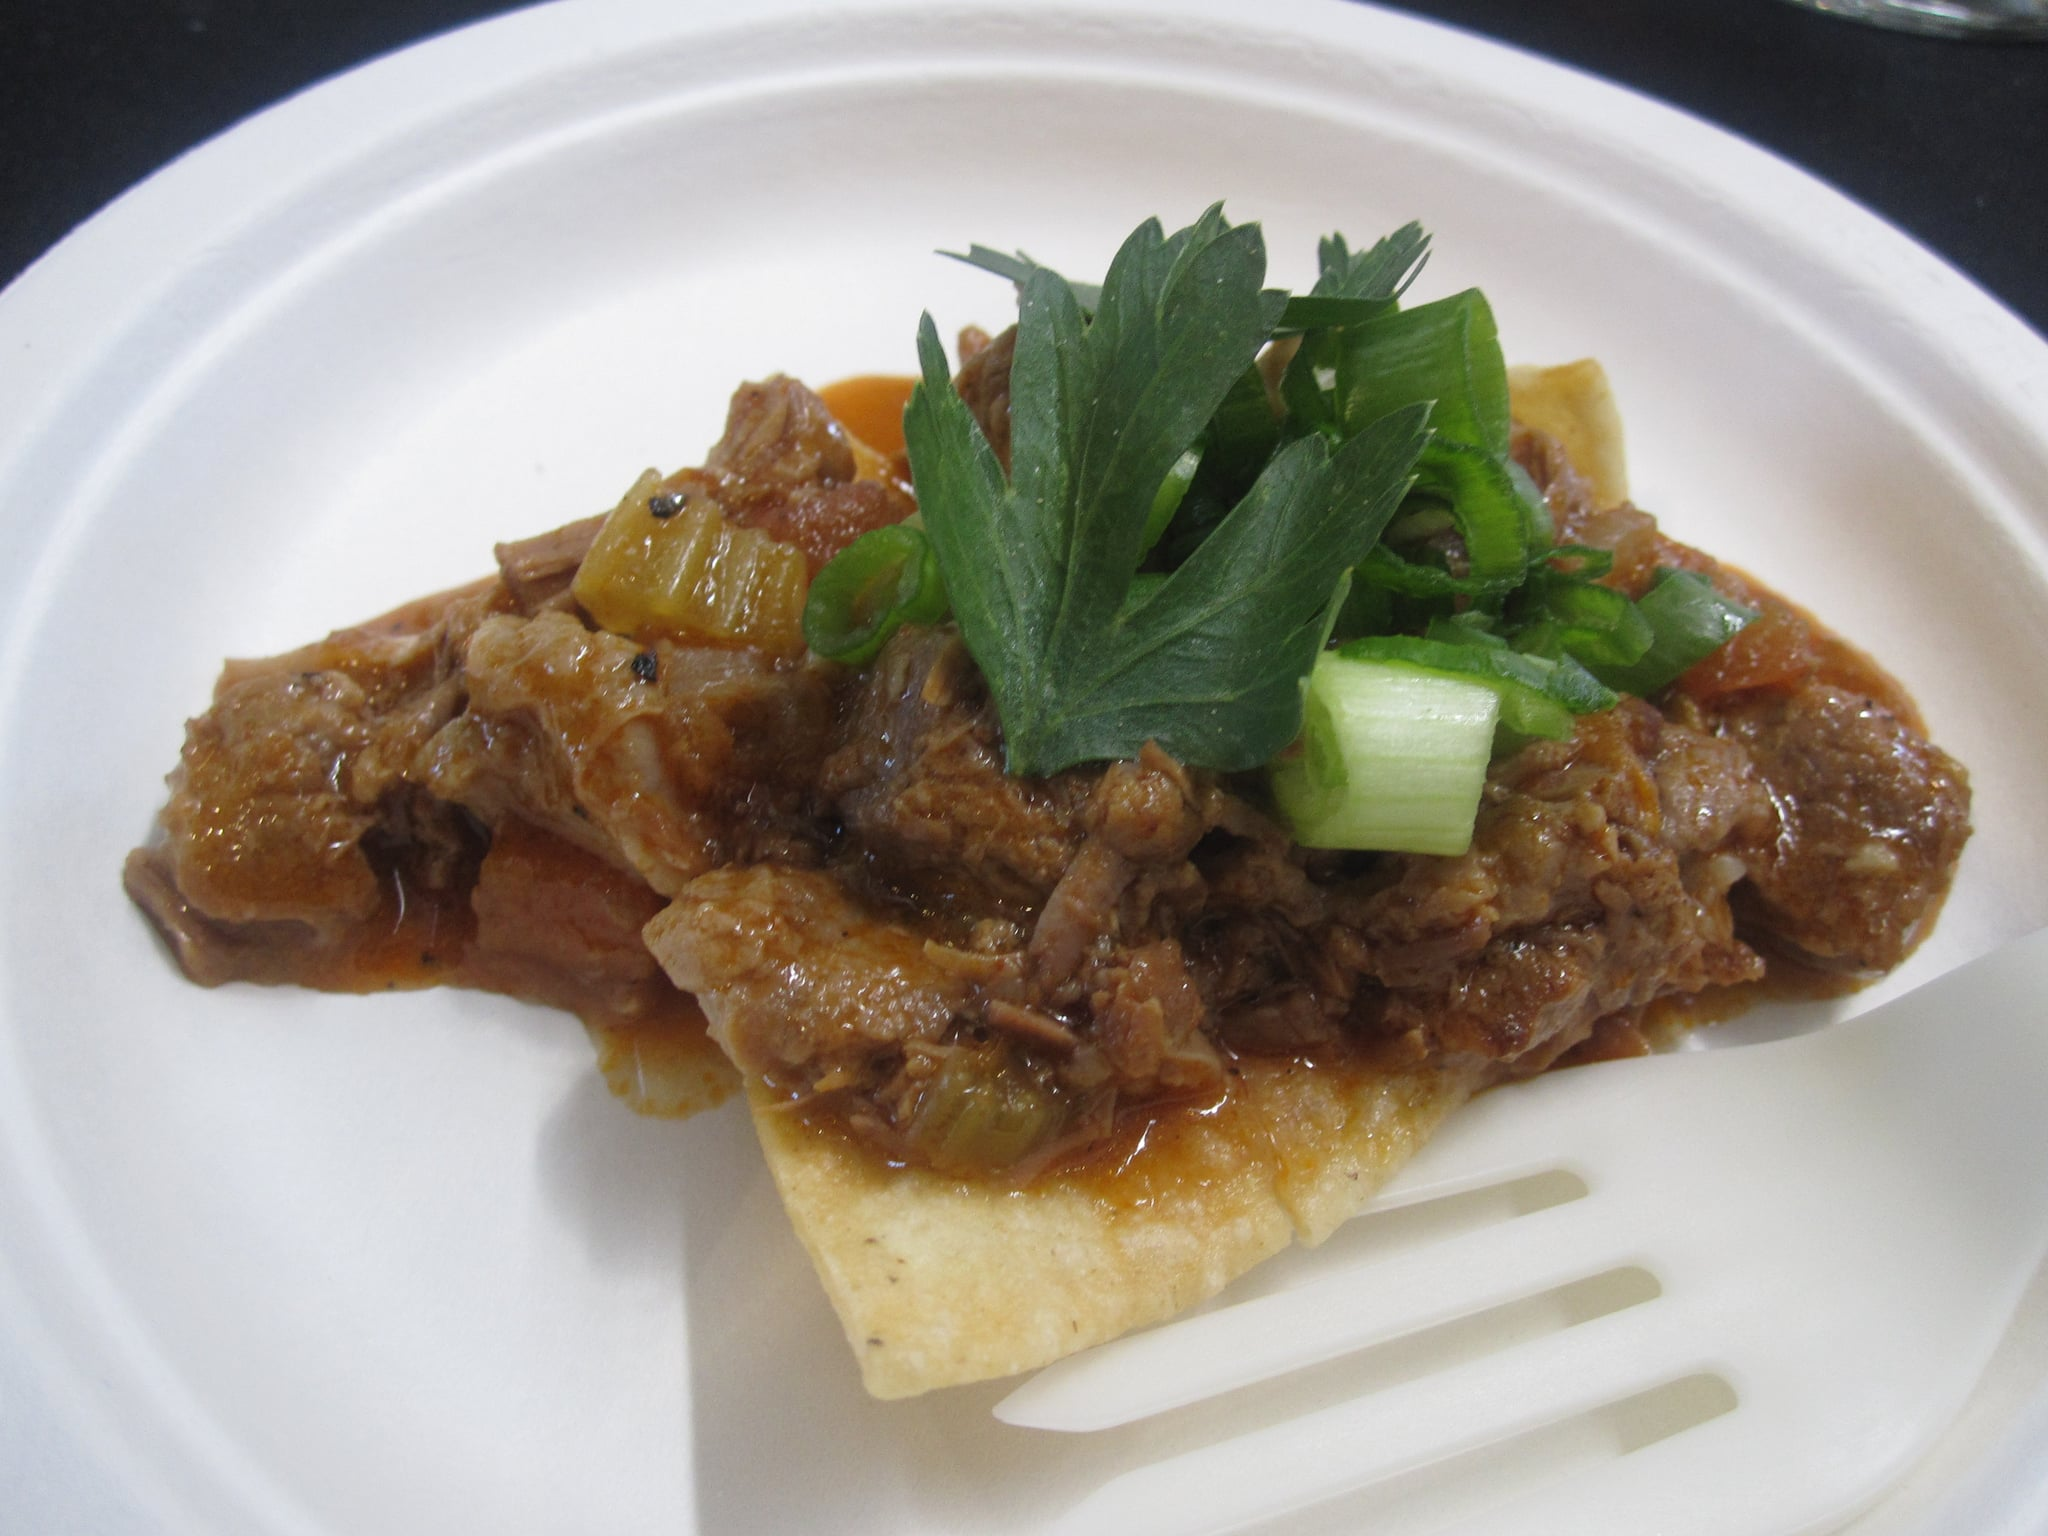 Lamb crostini was actually a Mexican-style preparation served on a crispy, just-fried tortilla chip.